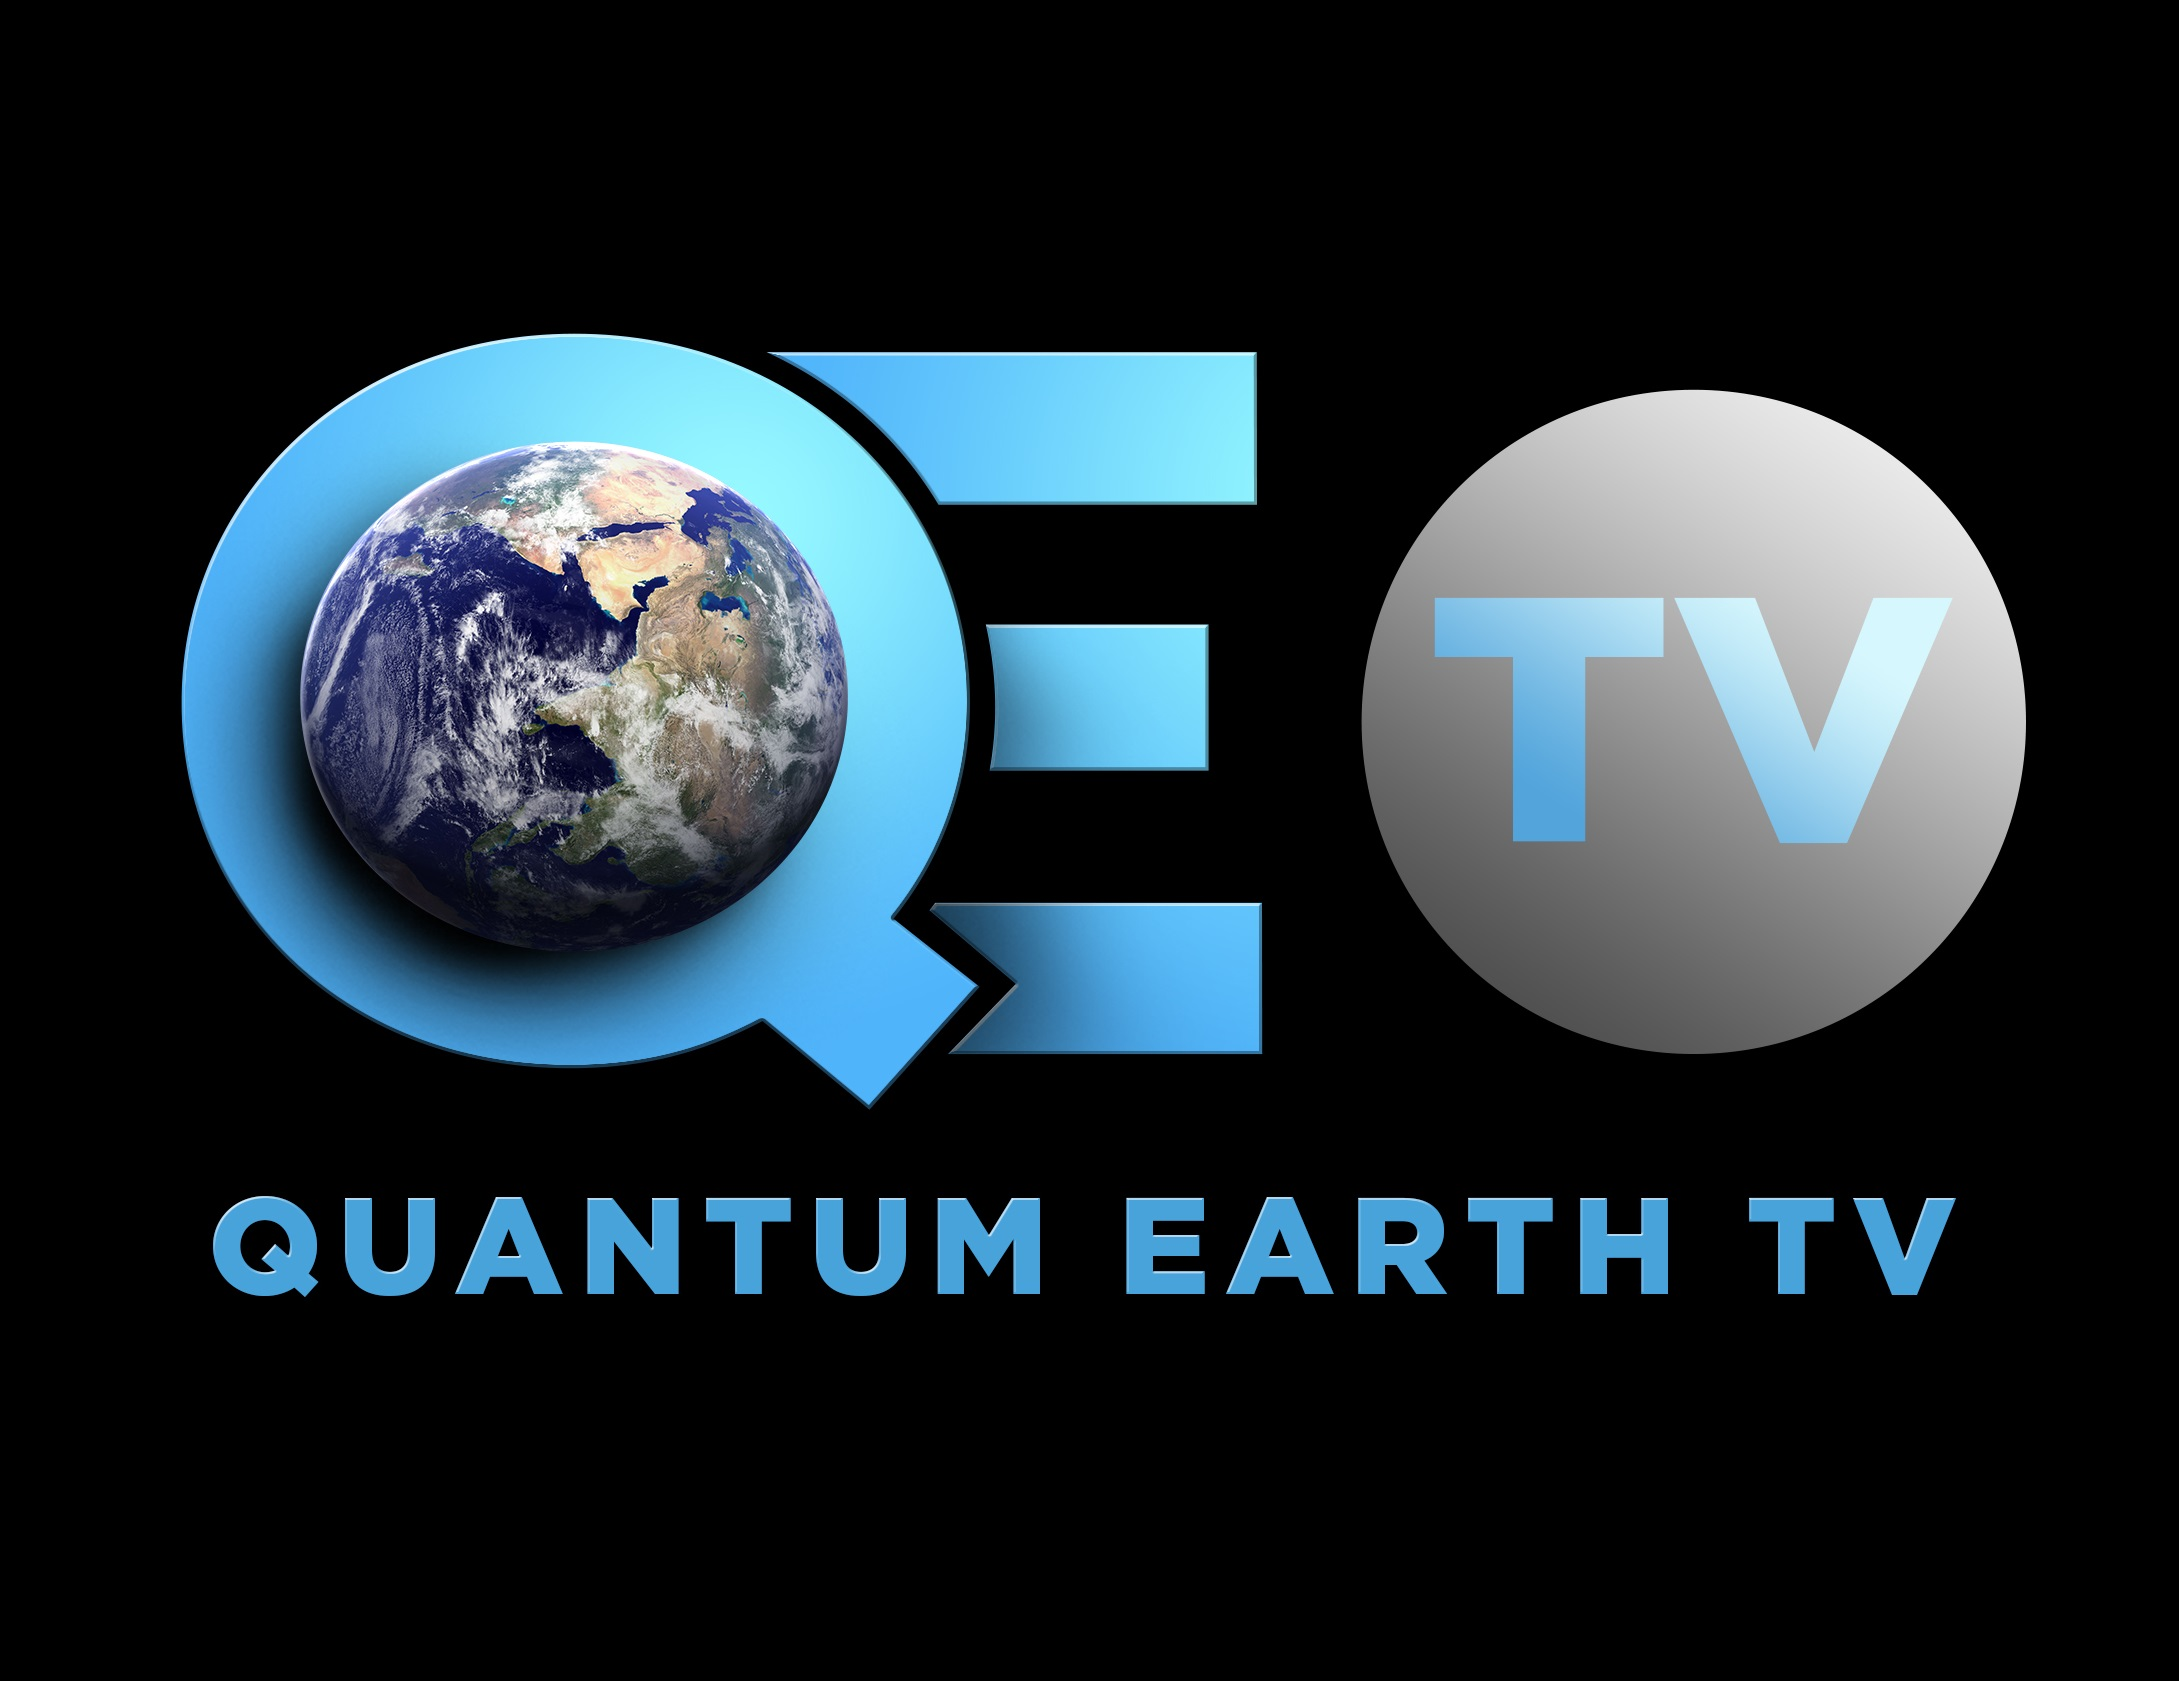 Quantum Earth TV (QETV) your Digital TV on advanced science and technology